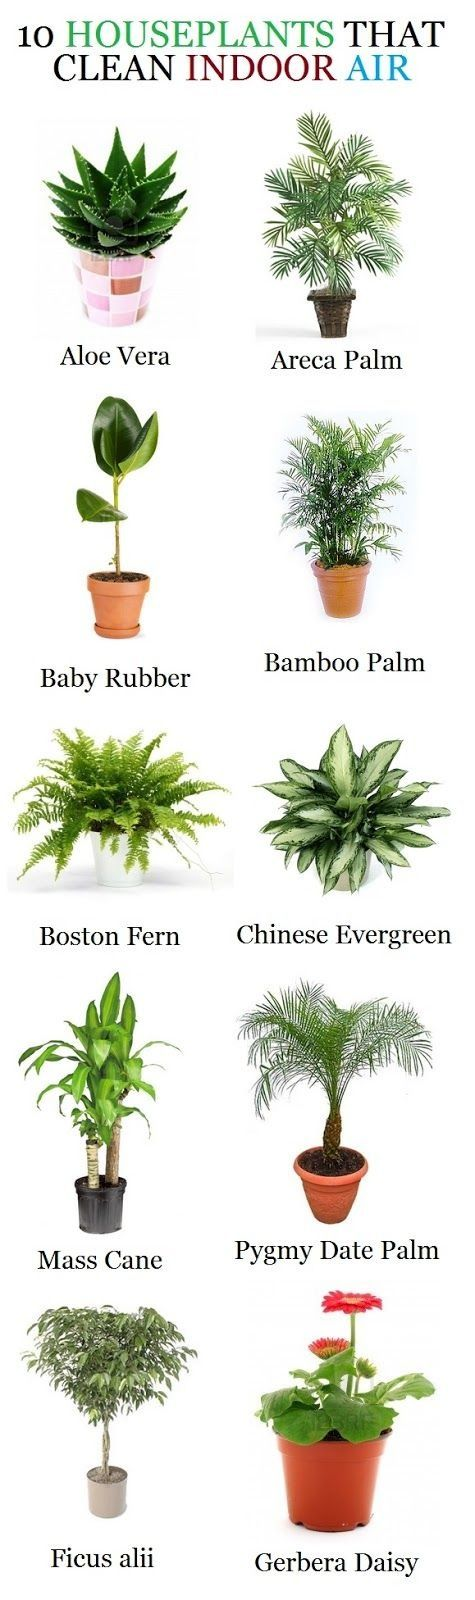 Good plants for your house.